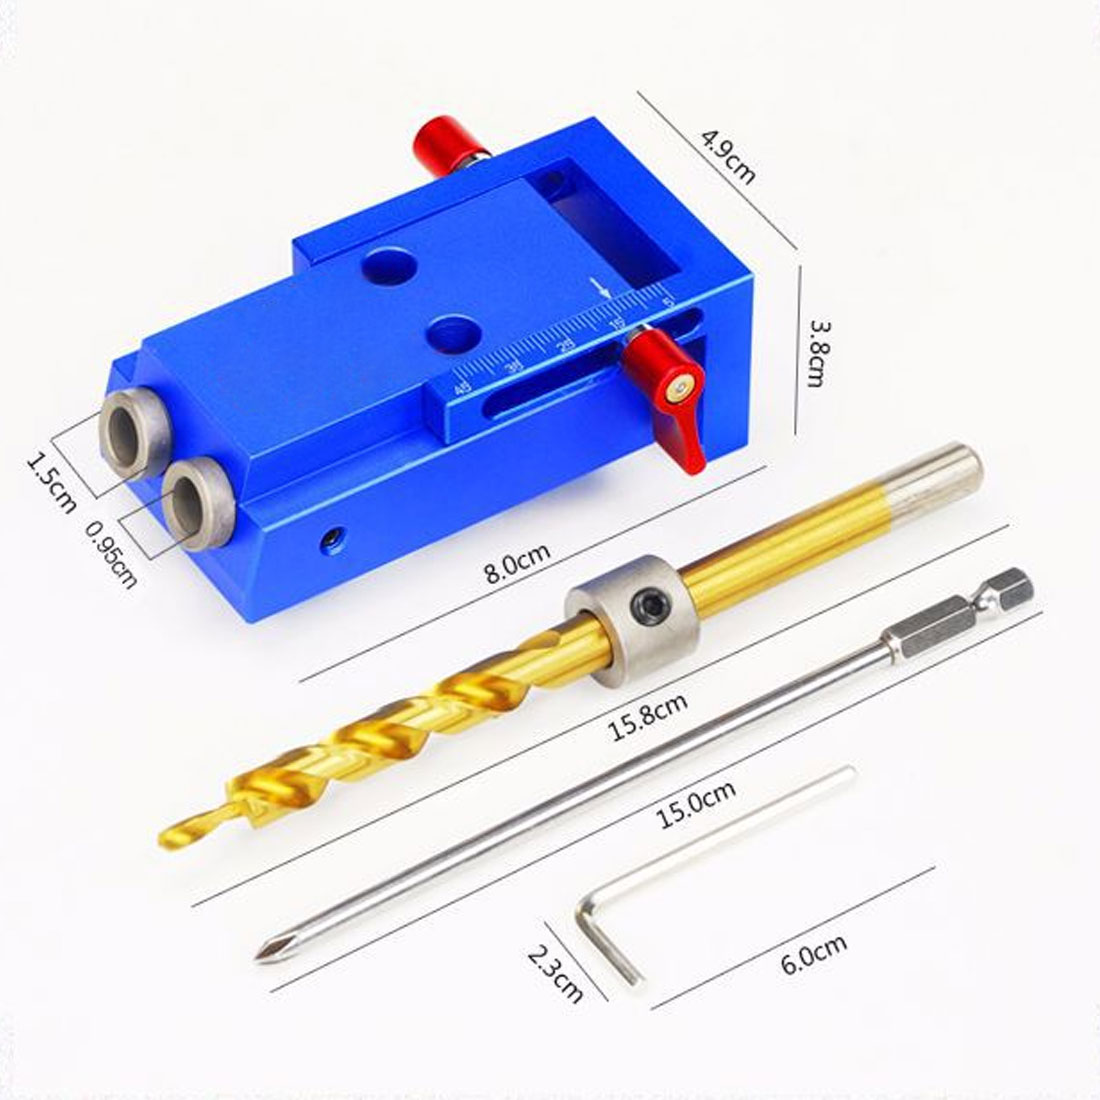 Woodworking Pocket Hole Jig Kit 6/8/10mm Angle Drill Guide Set Hole Puncher Locator Jig Drill Bit Set For DIY Carpentry Tools 6 8 10mm conductor for drilling mini pocket hole jig woodworking drill guide set locator dowel jig guide power tools